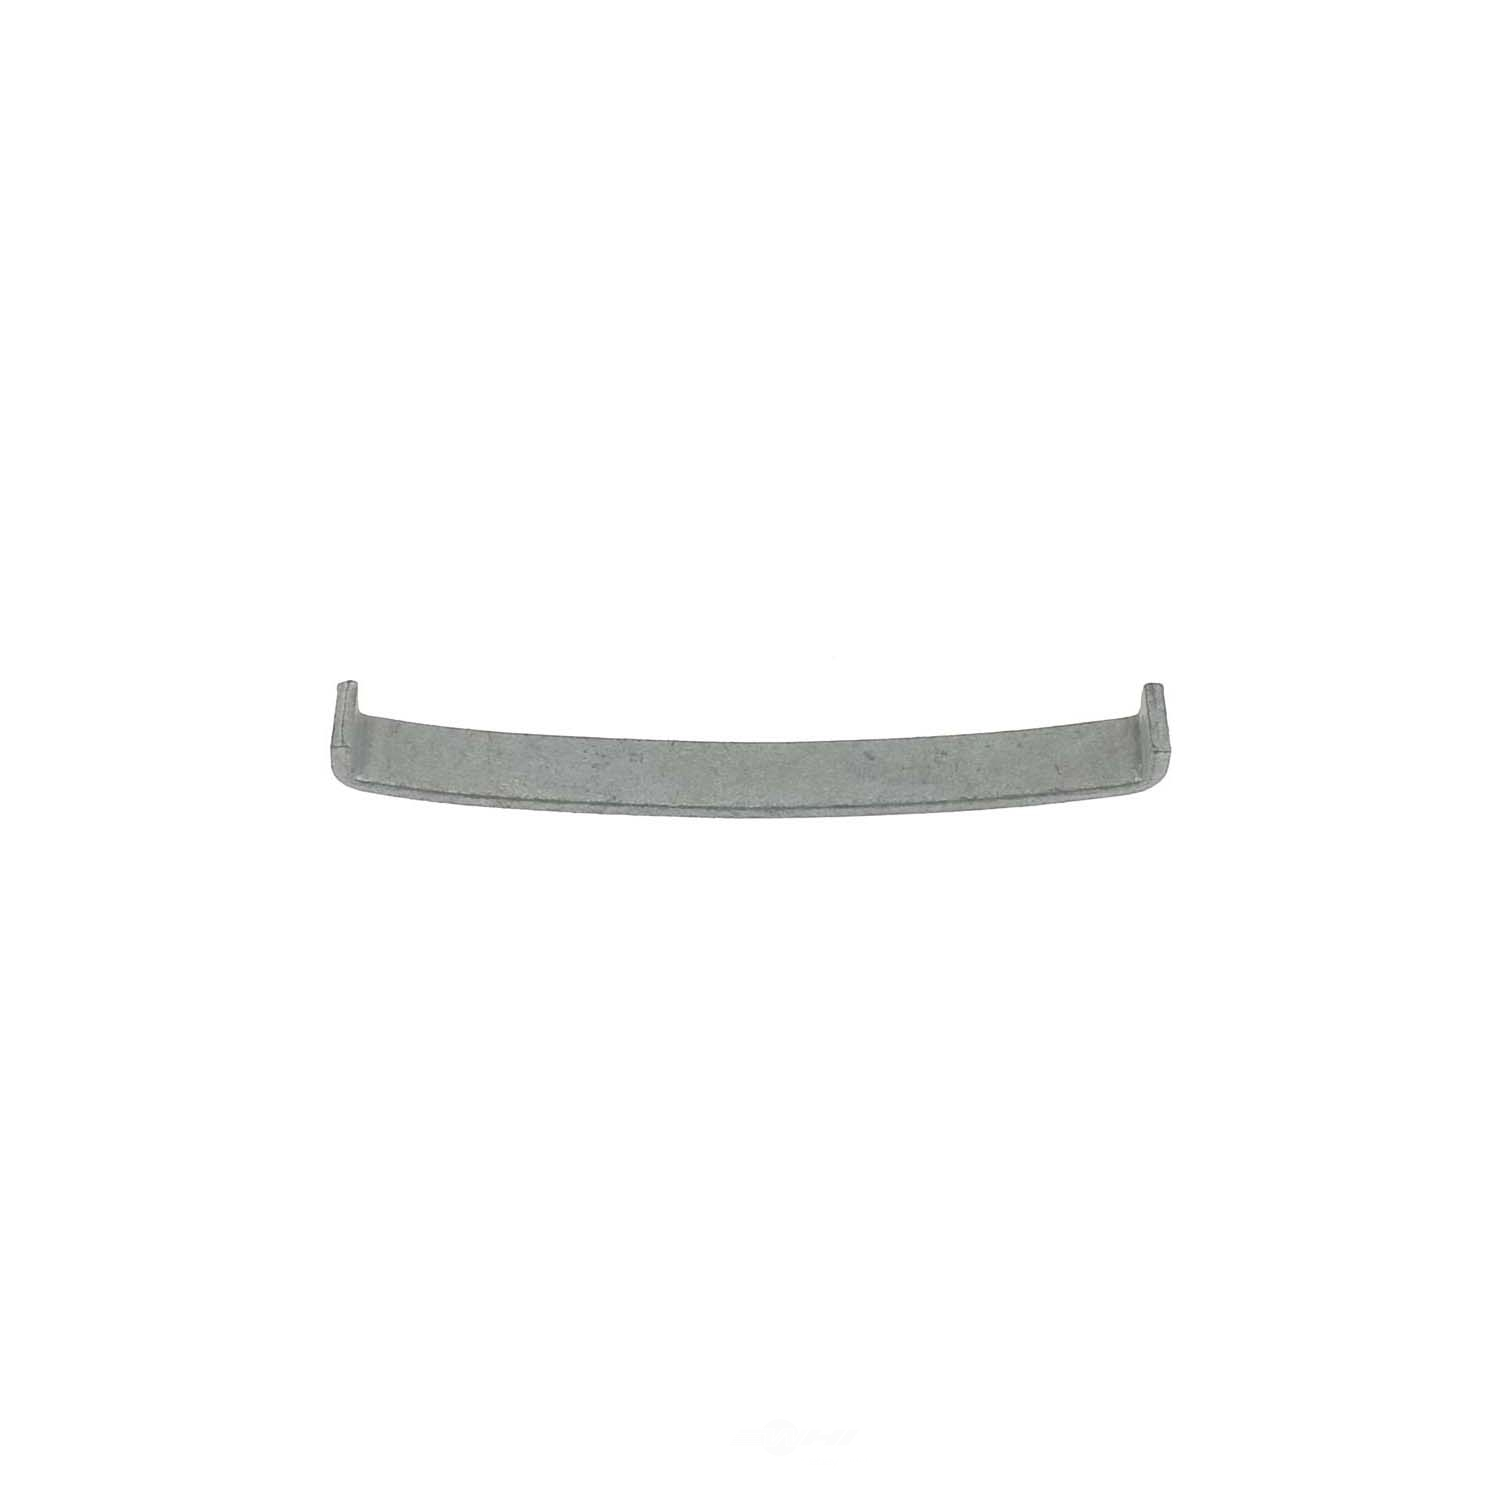 CARLSON QUALITY BRAKE PARTS - Disc Brake Key Spring - CRL H5306-2